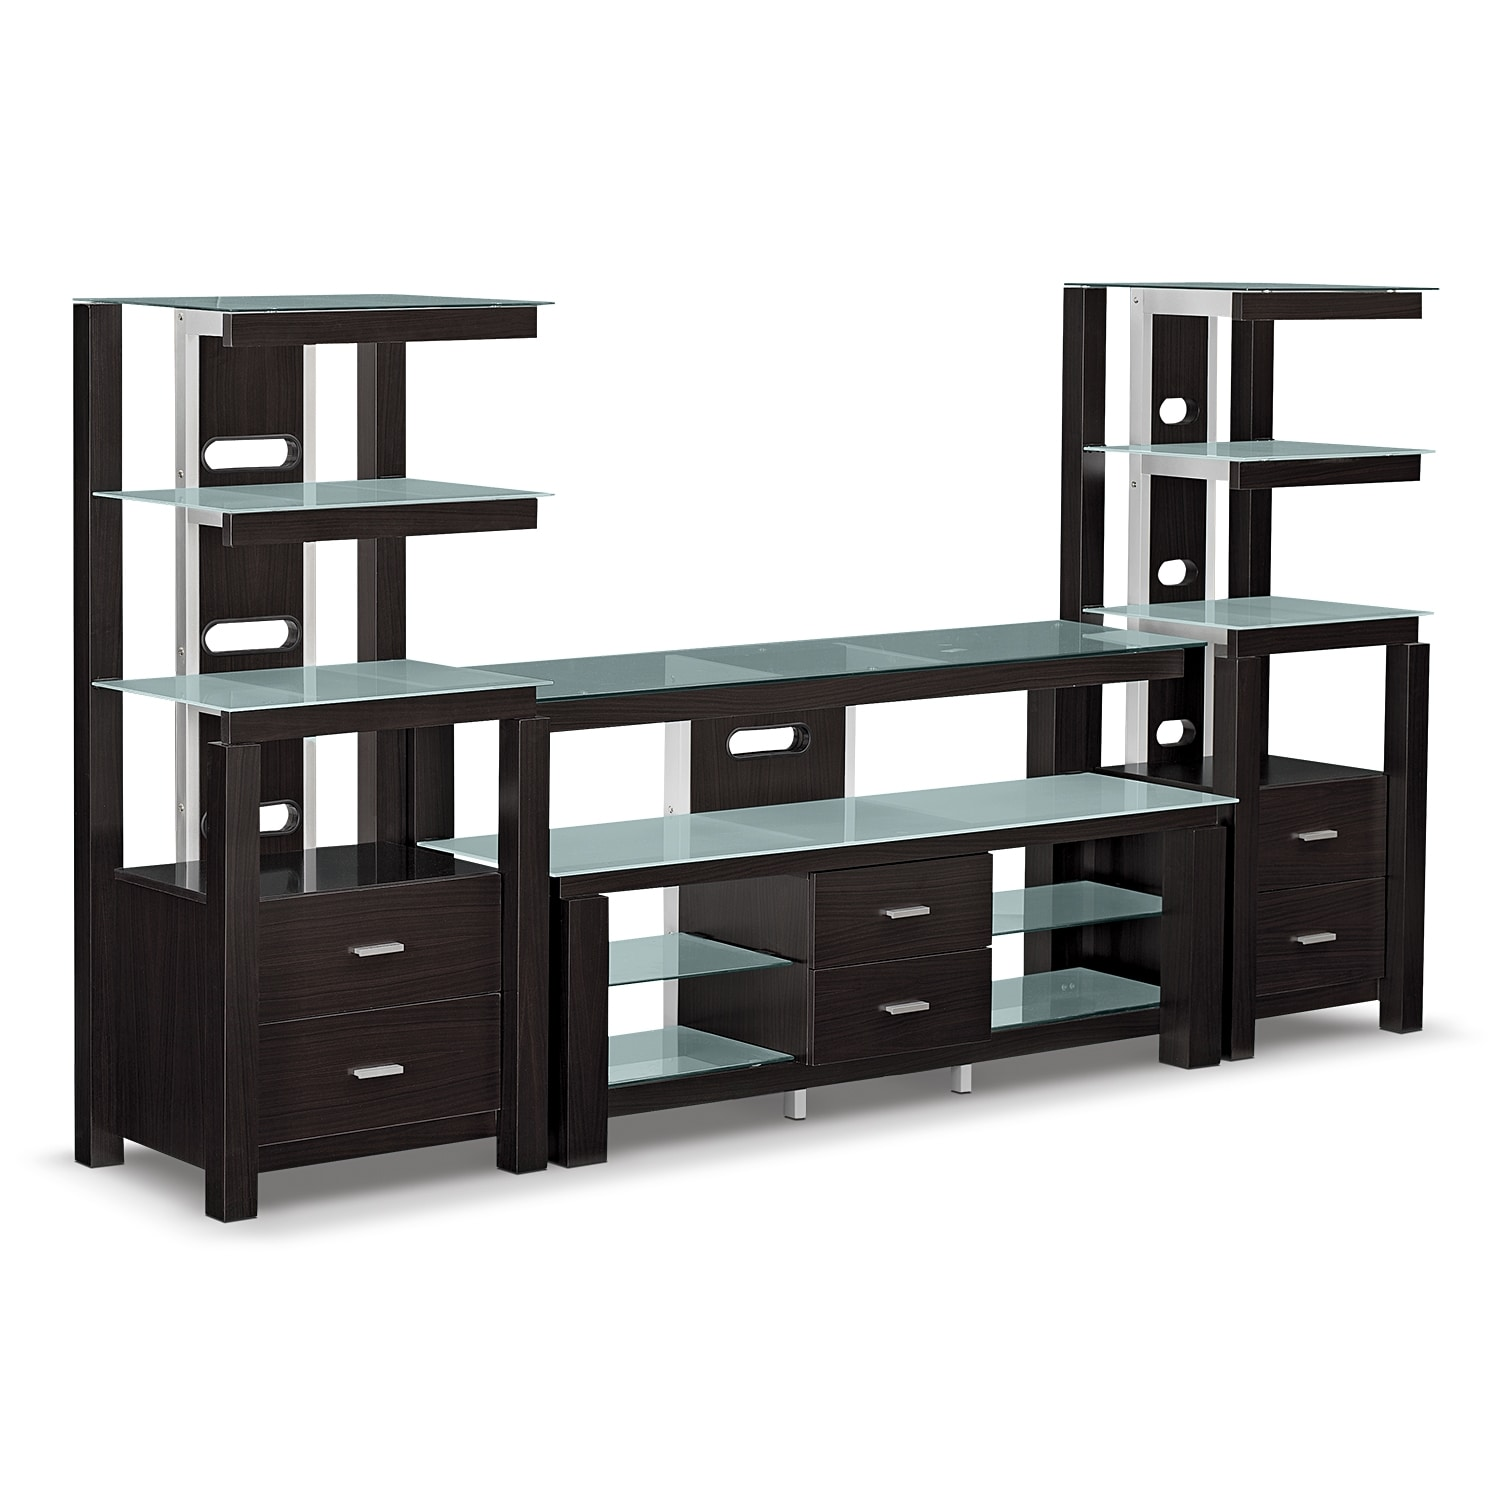 City Furniture Wall Units Union City 4 Pc Entertainment Wall Unit Value City Brentwood